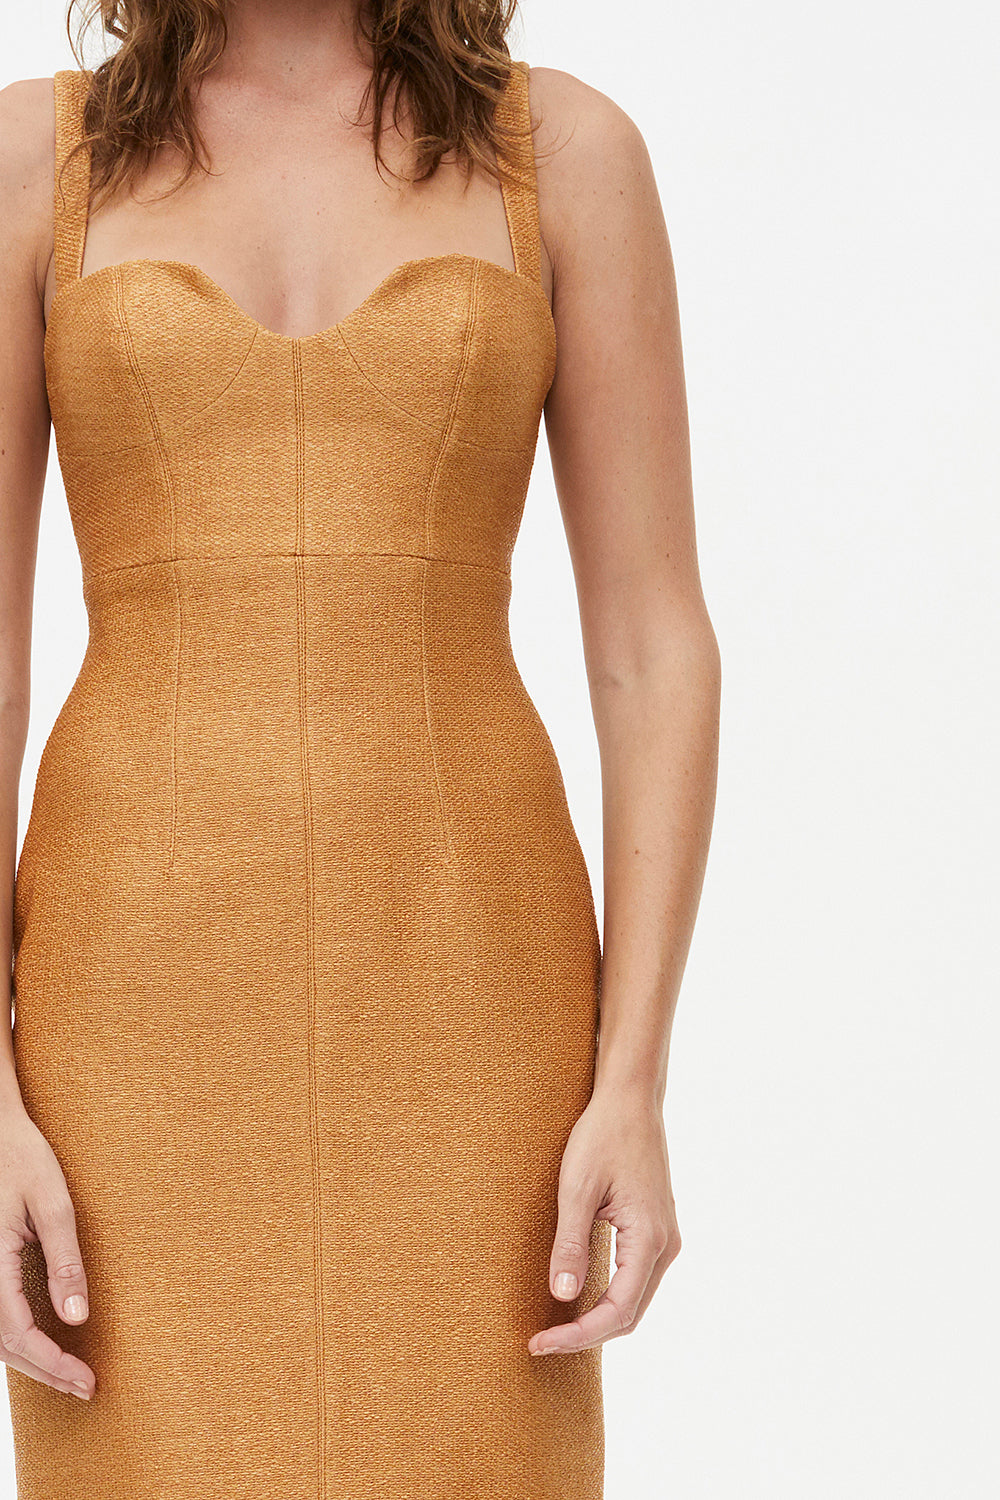 GOLDEN TICKET DRESS